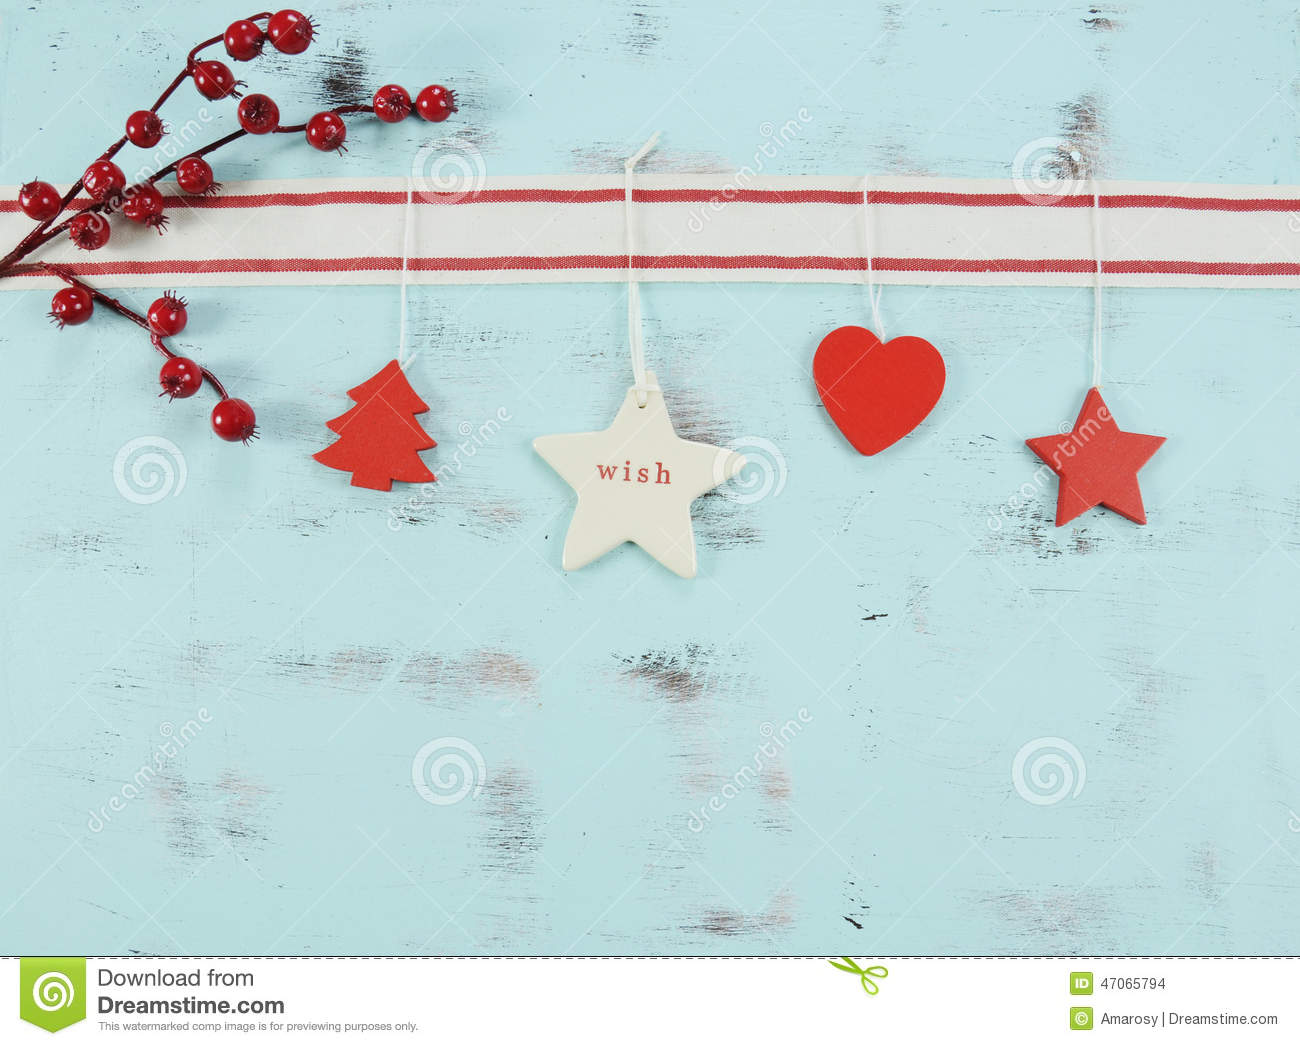 Modern red and white hanging Christmas decorations on aqua blue wood background.